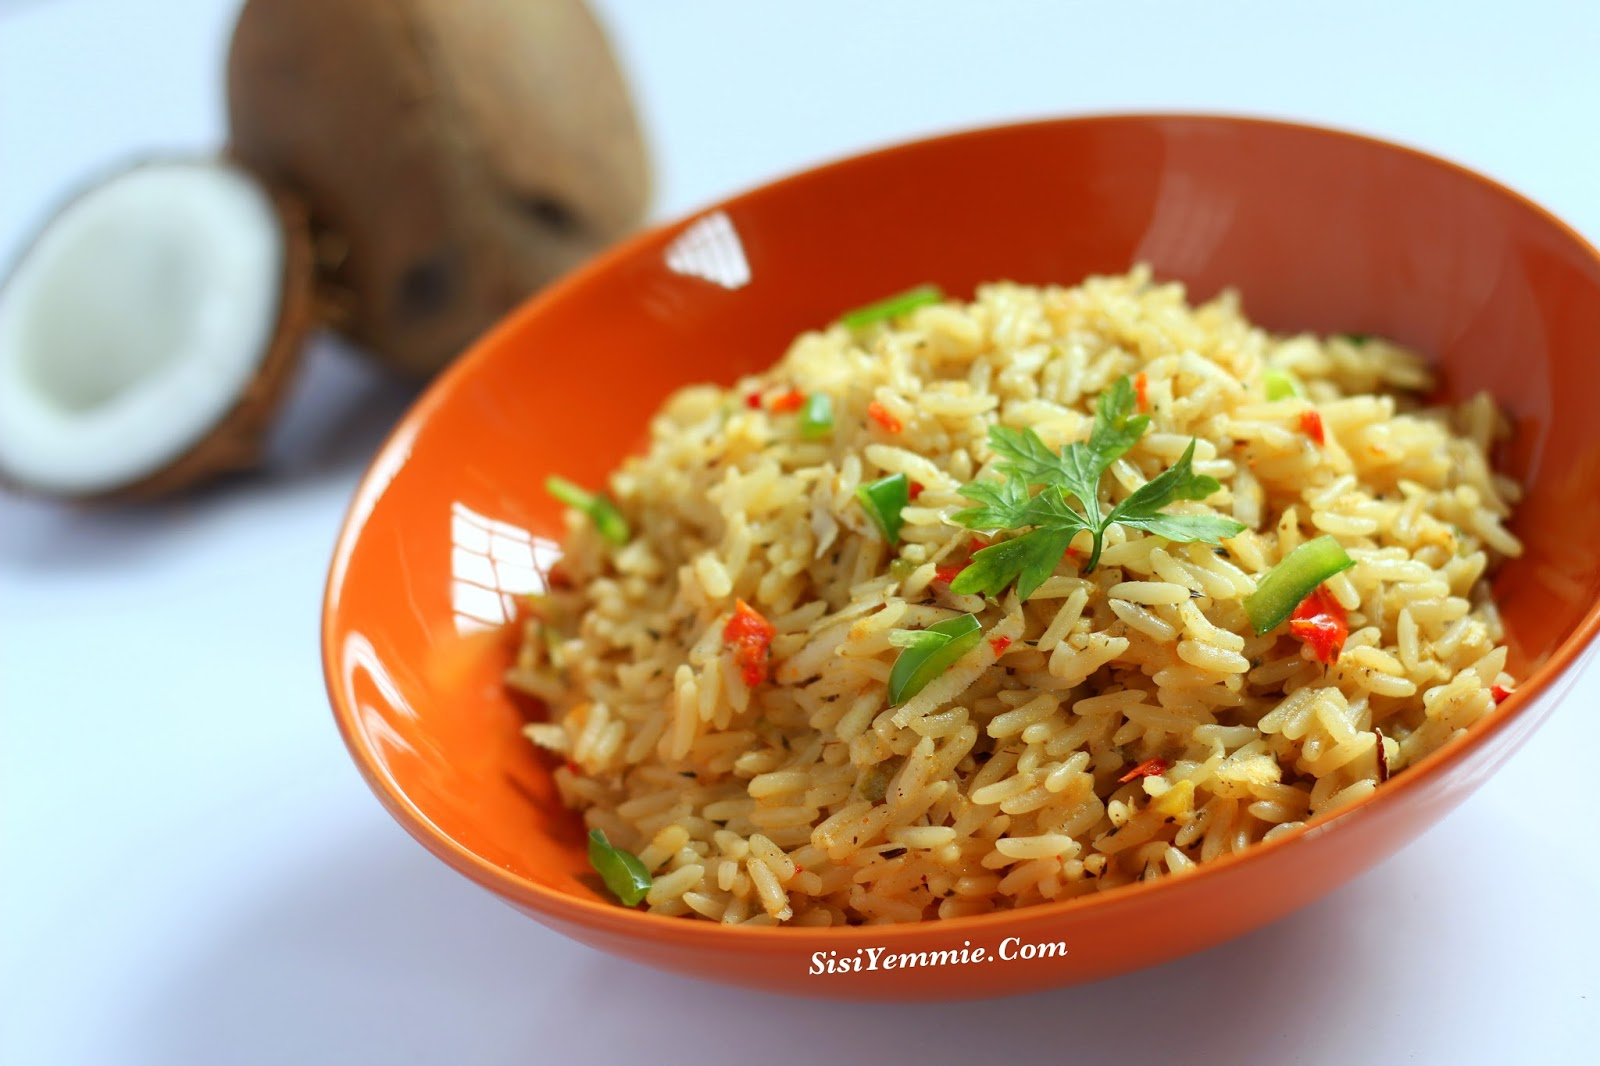 Nigerian coconut rice recipe sisiyemmie nigerian food lifestyle today lets do plain coconut rice simples coconut rice is really simple to make just a mixture of coconut rice and spices ccuart Image collections